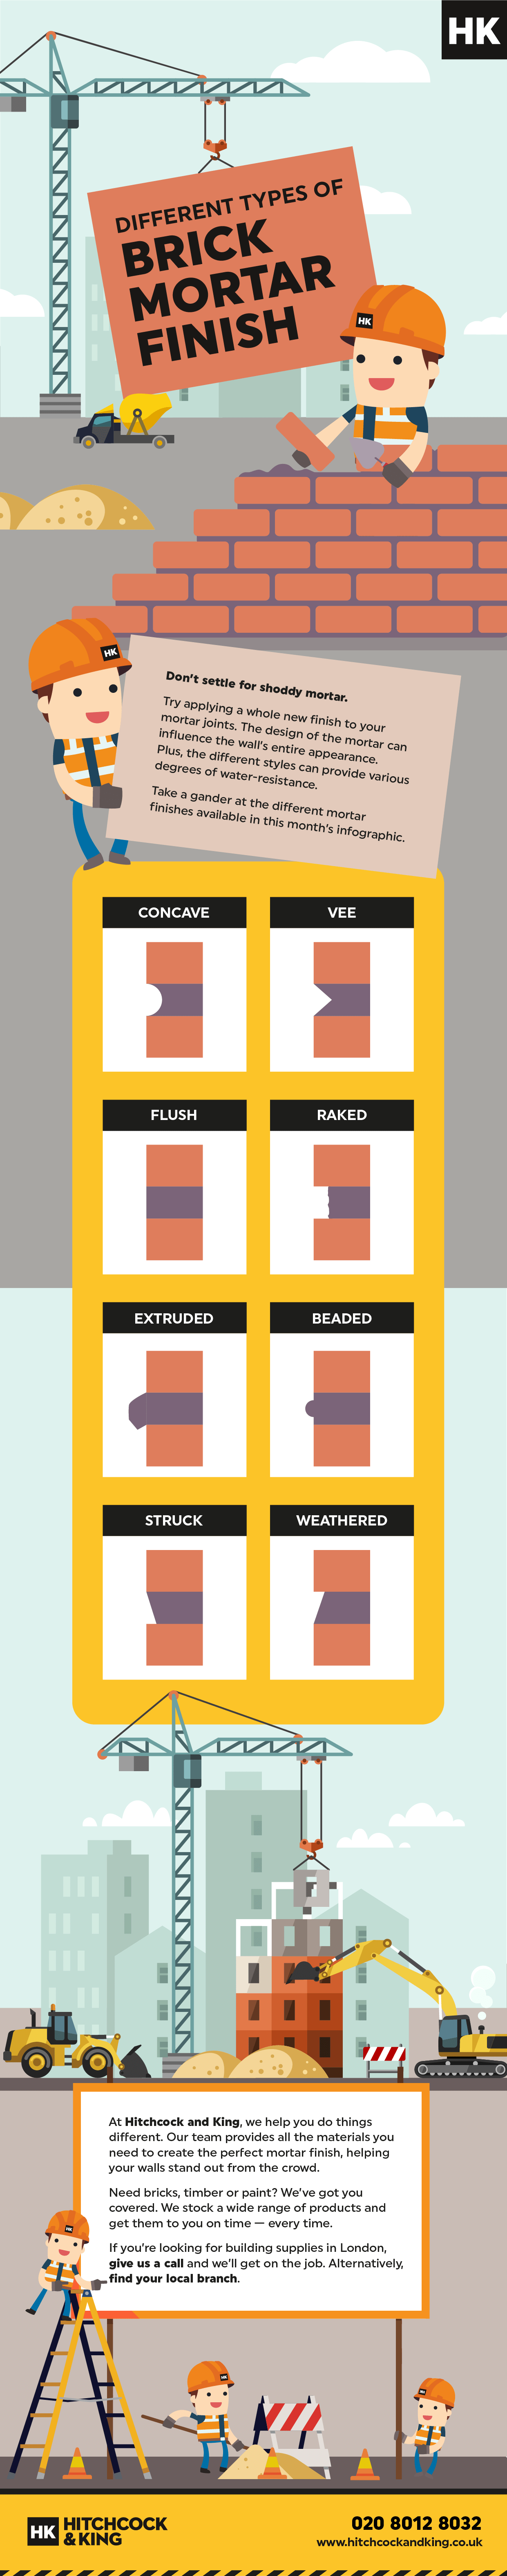 Different types of brick mortar finishes infographic